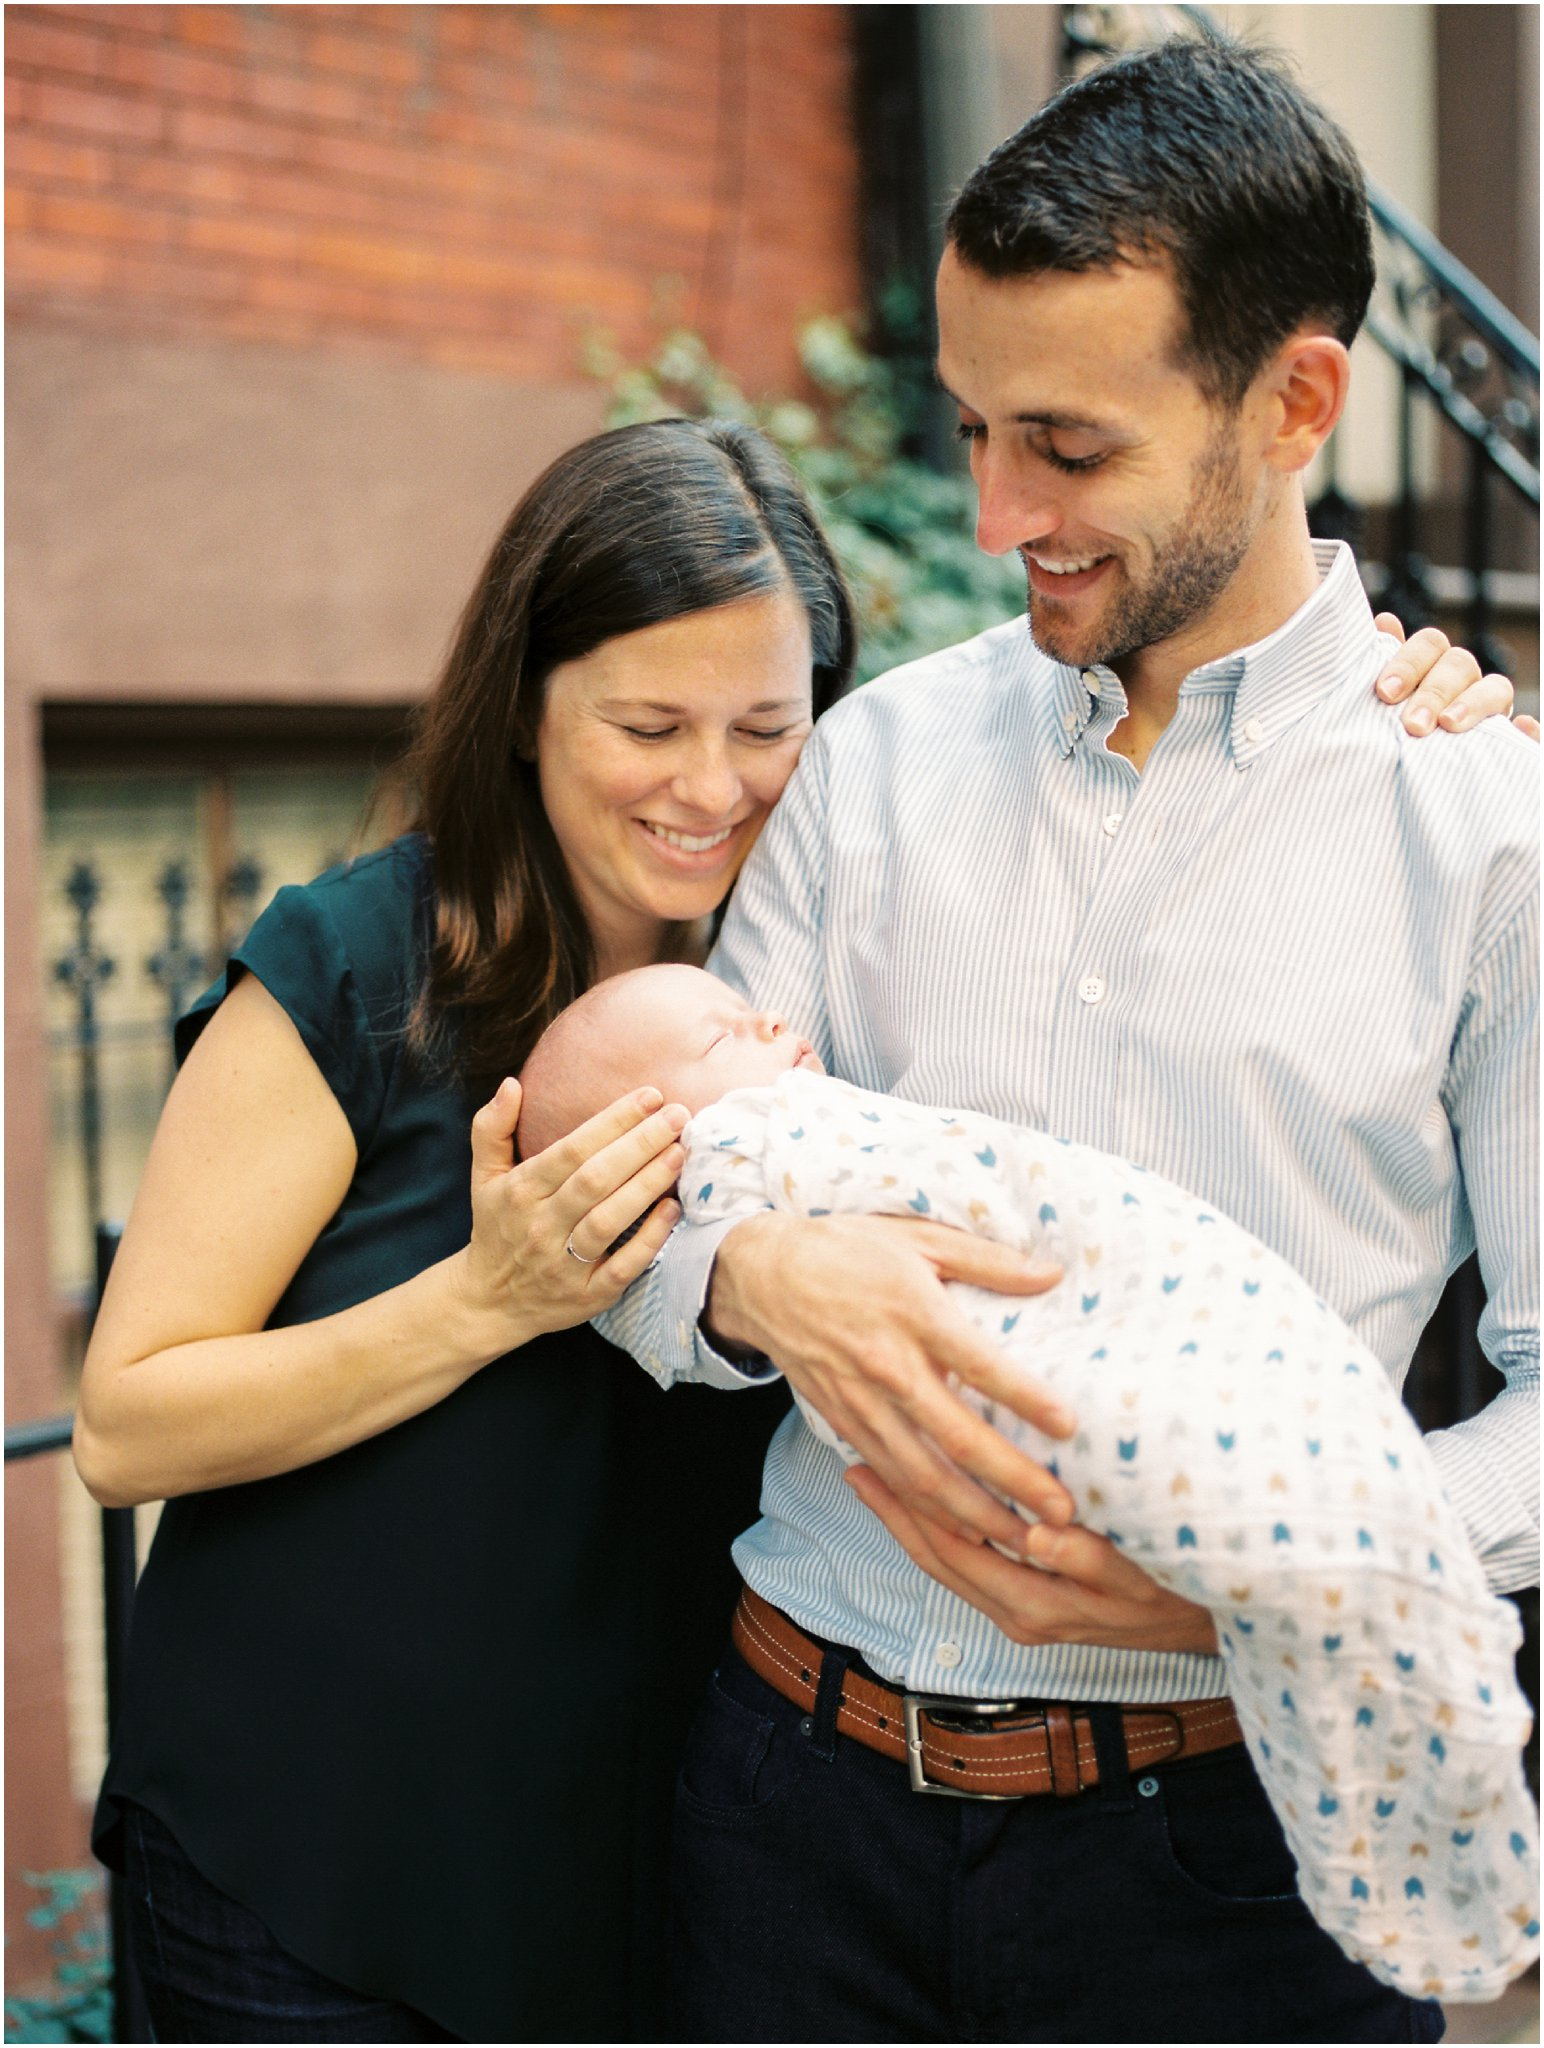 New york city newborn photos by charlottesville family photographer, amy nicole photography-007